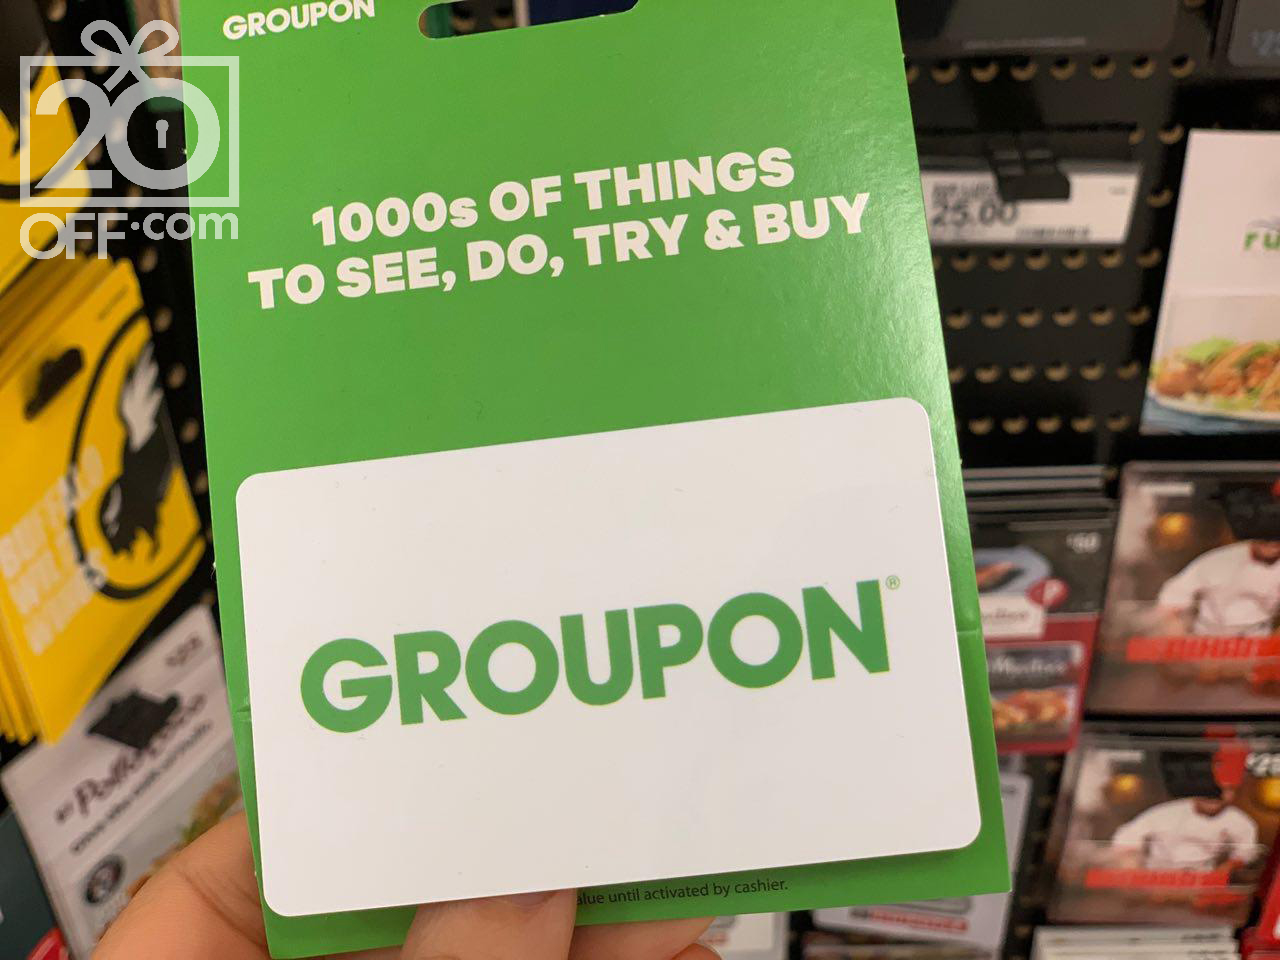 Groupon Promotion Offers